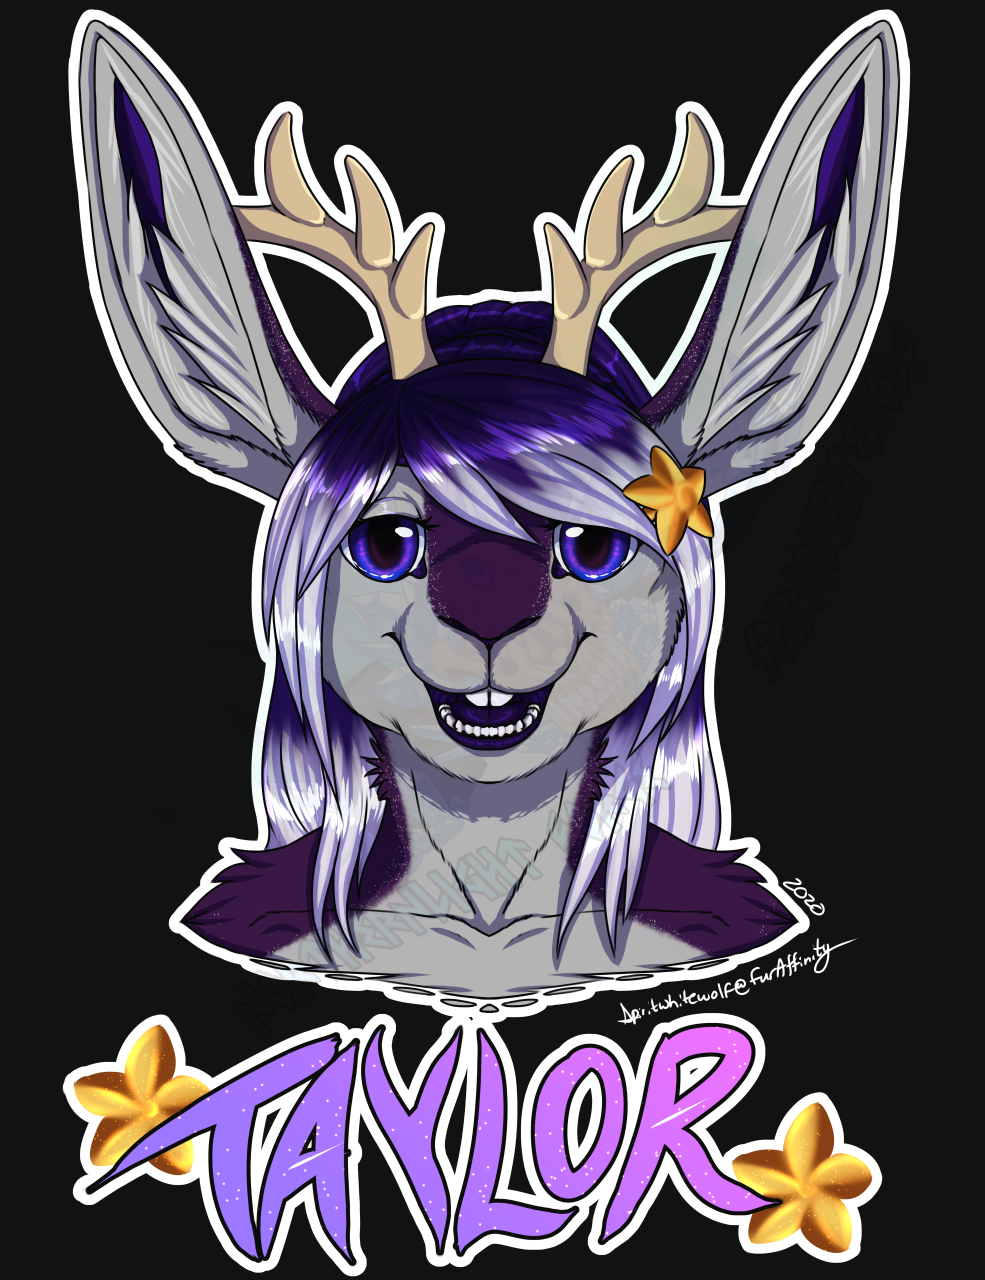 Most recent image: [C] Badge Commission - Taylor